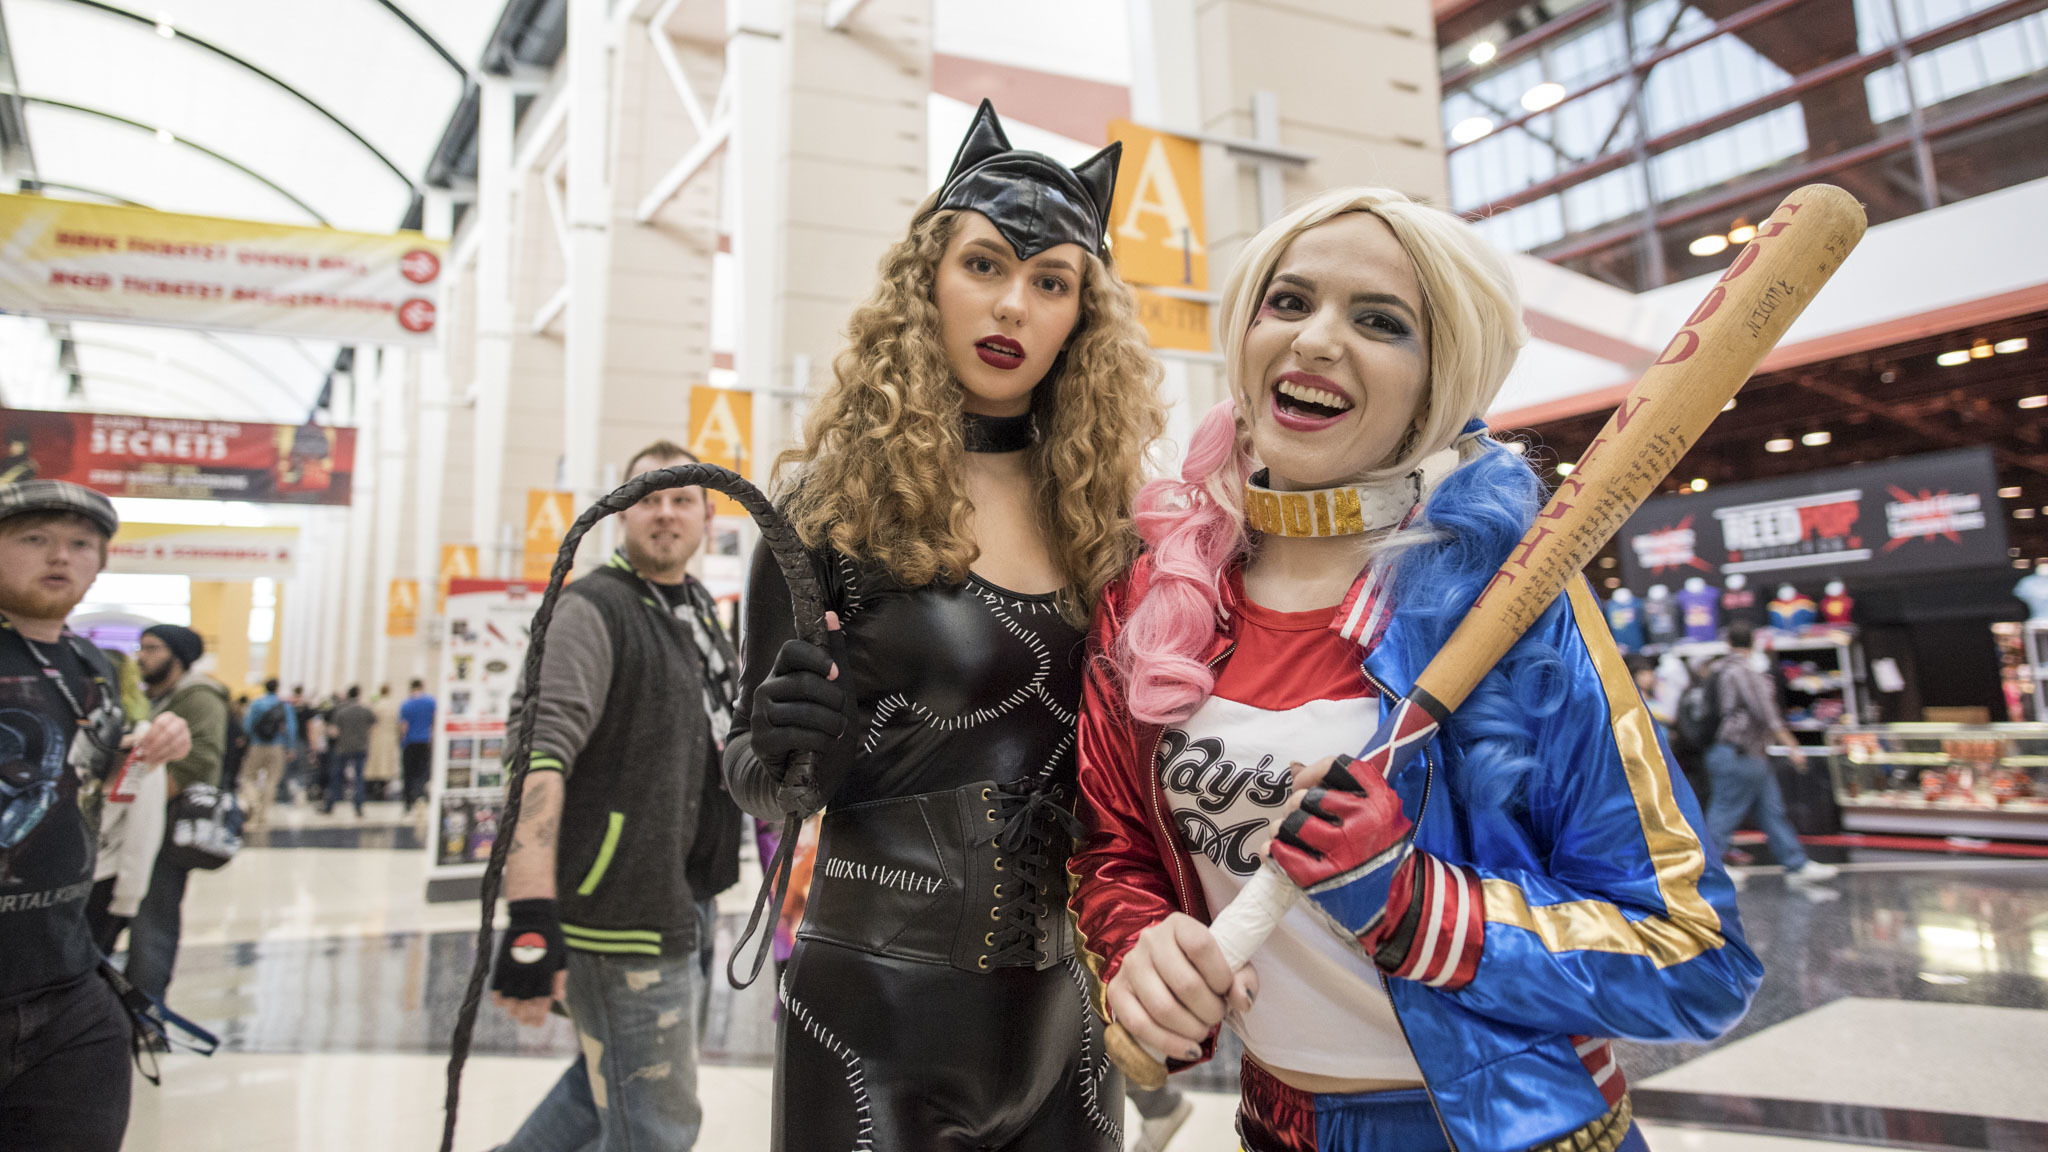 Comic book conventions in Chicago